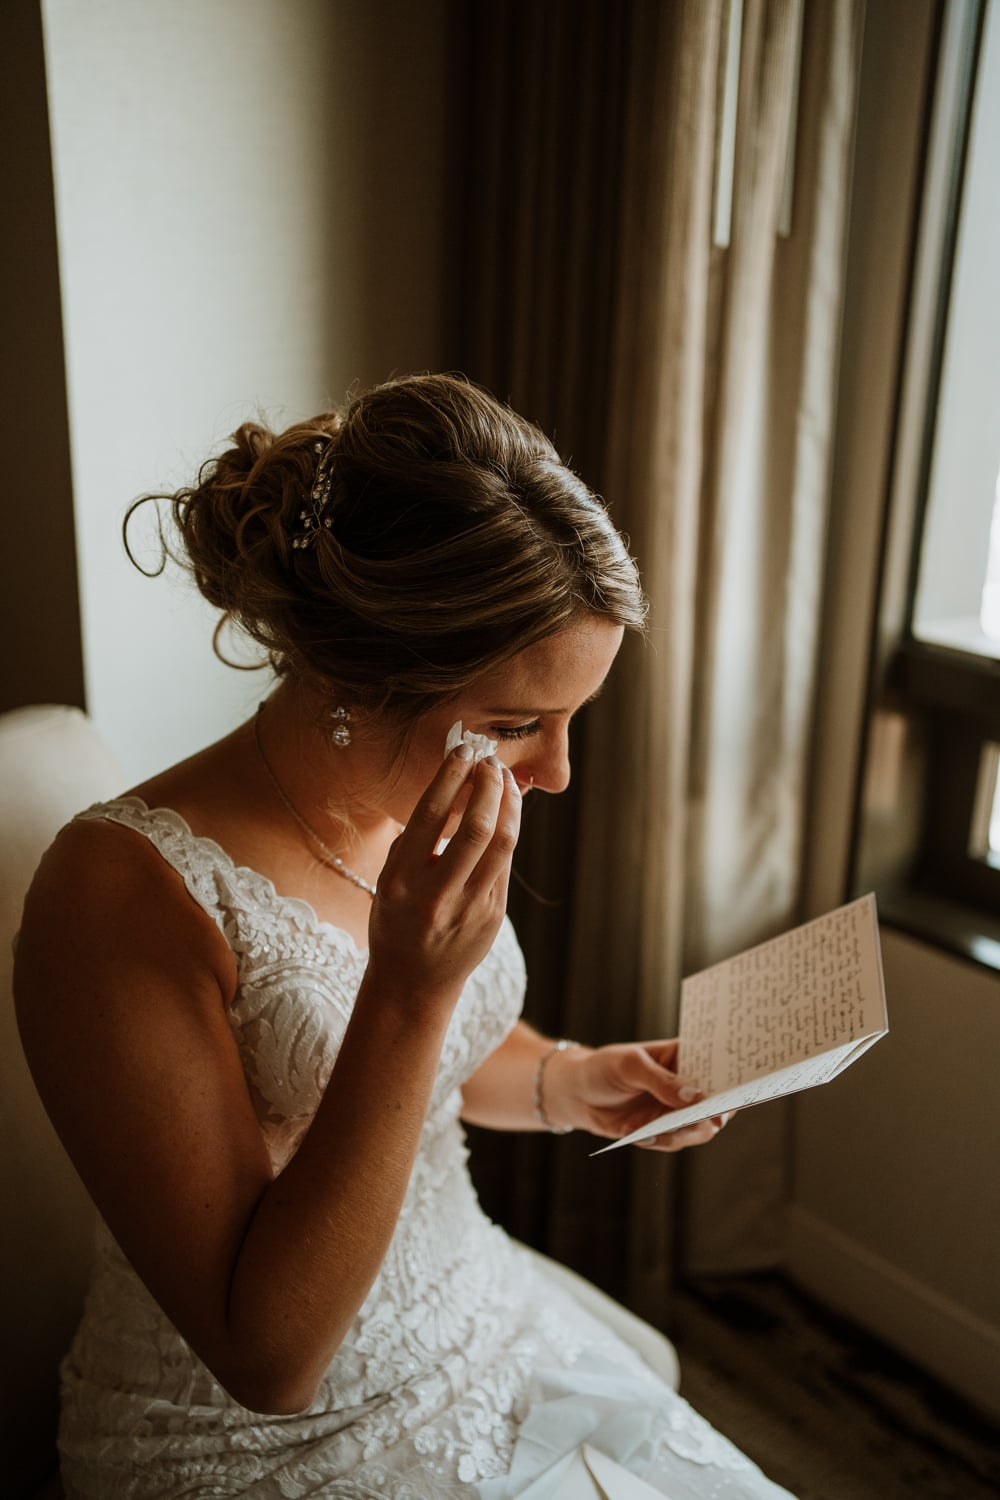 Bride wipes her tears with a tissue as she reads love letter from her groom while getting ready